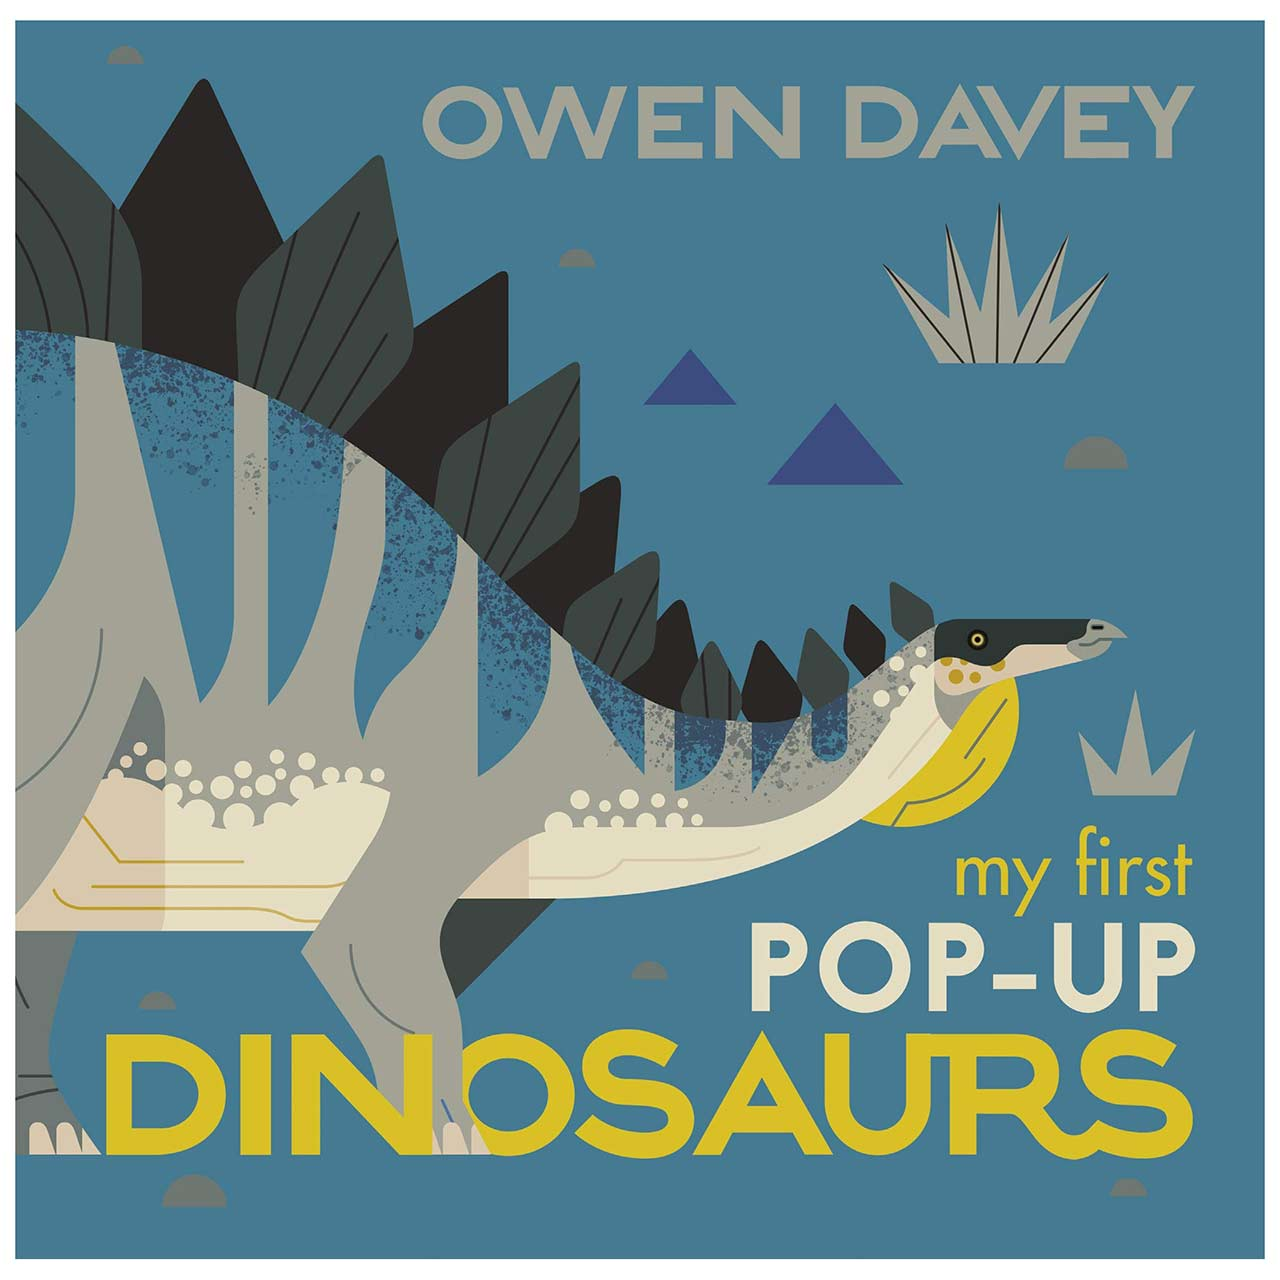 My First Pop-Up Dinosaurs Book by Owen Davey | the design gift shop